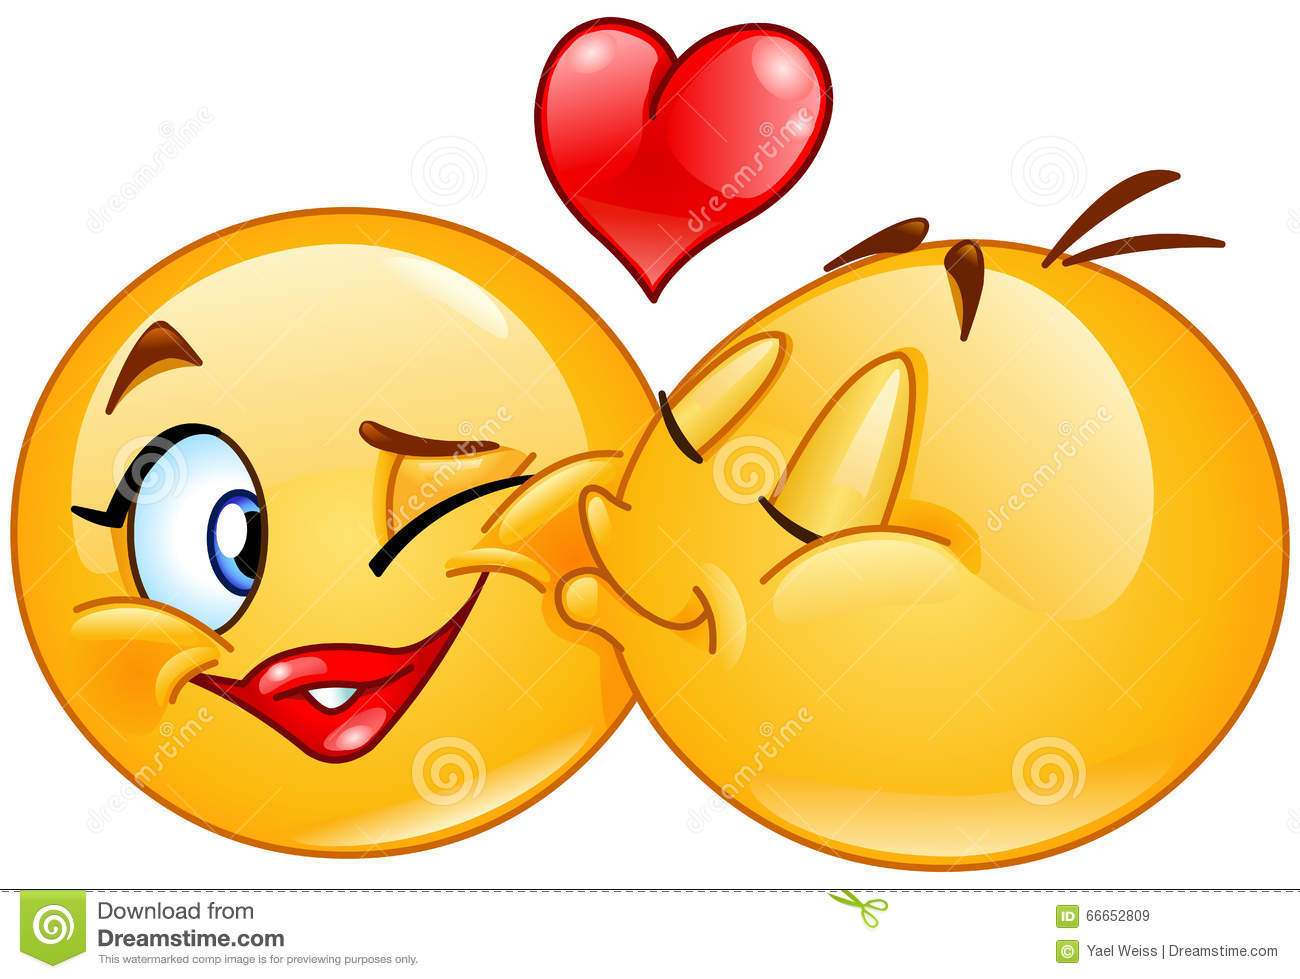 Kissing emoticons. Male emoticon kissing a female emoticon.